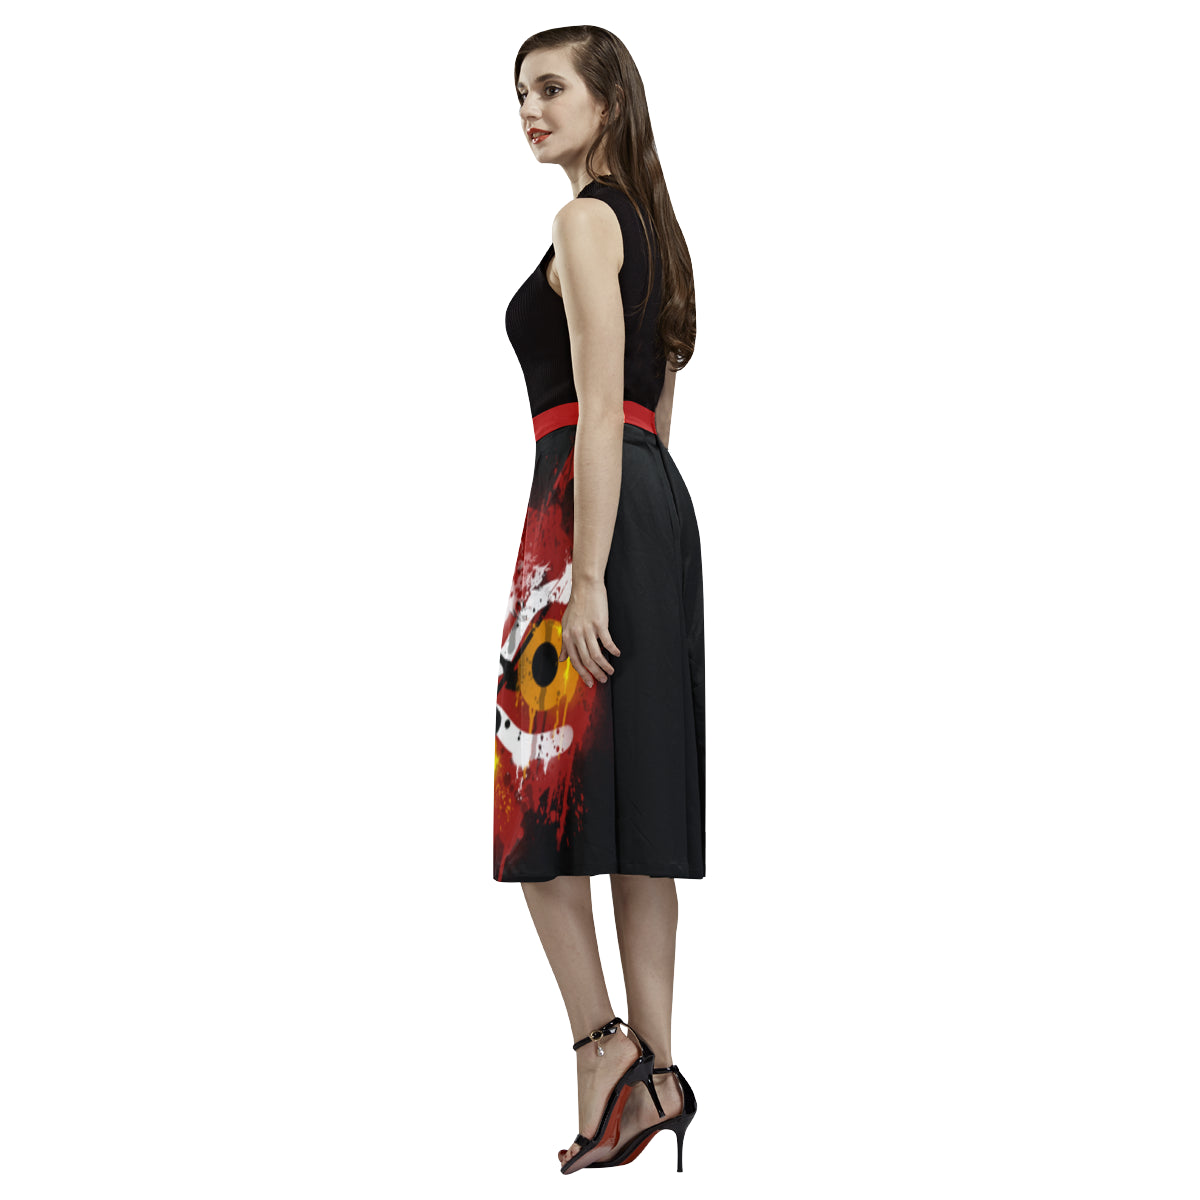 Mononoke Graffiti Skirt Aoede Crepe Skirt (Model D16)